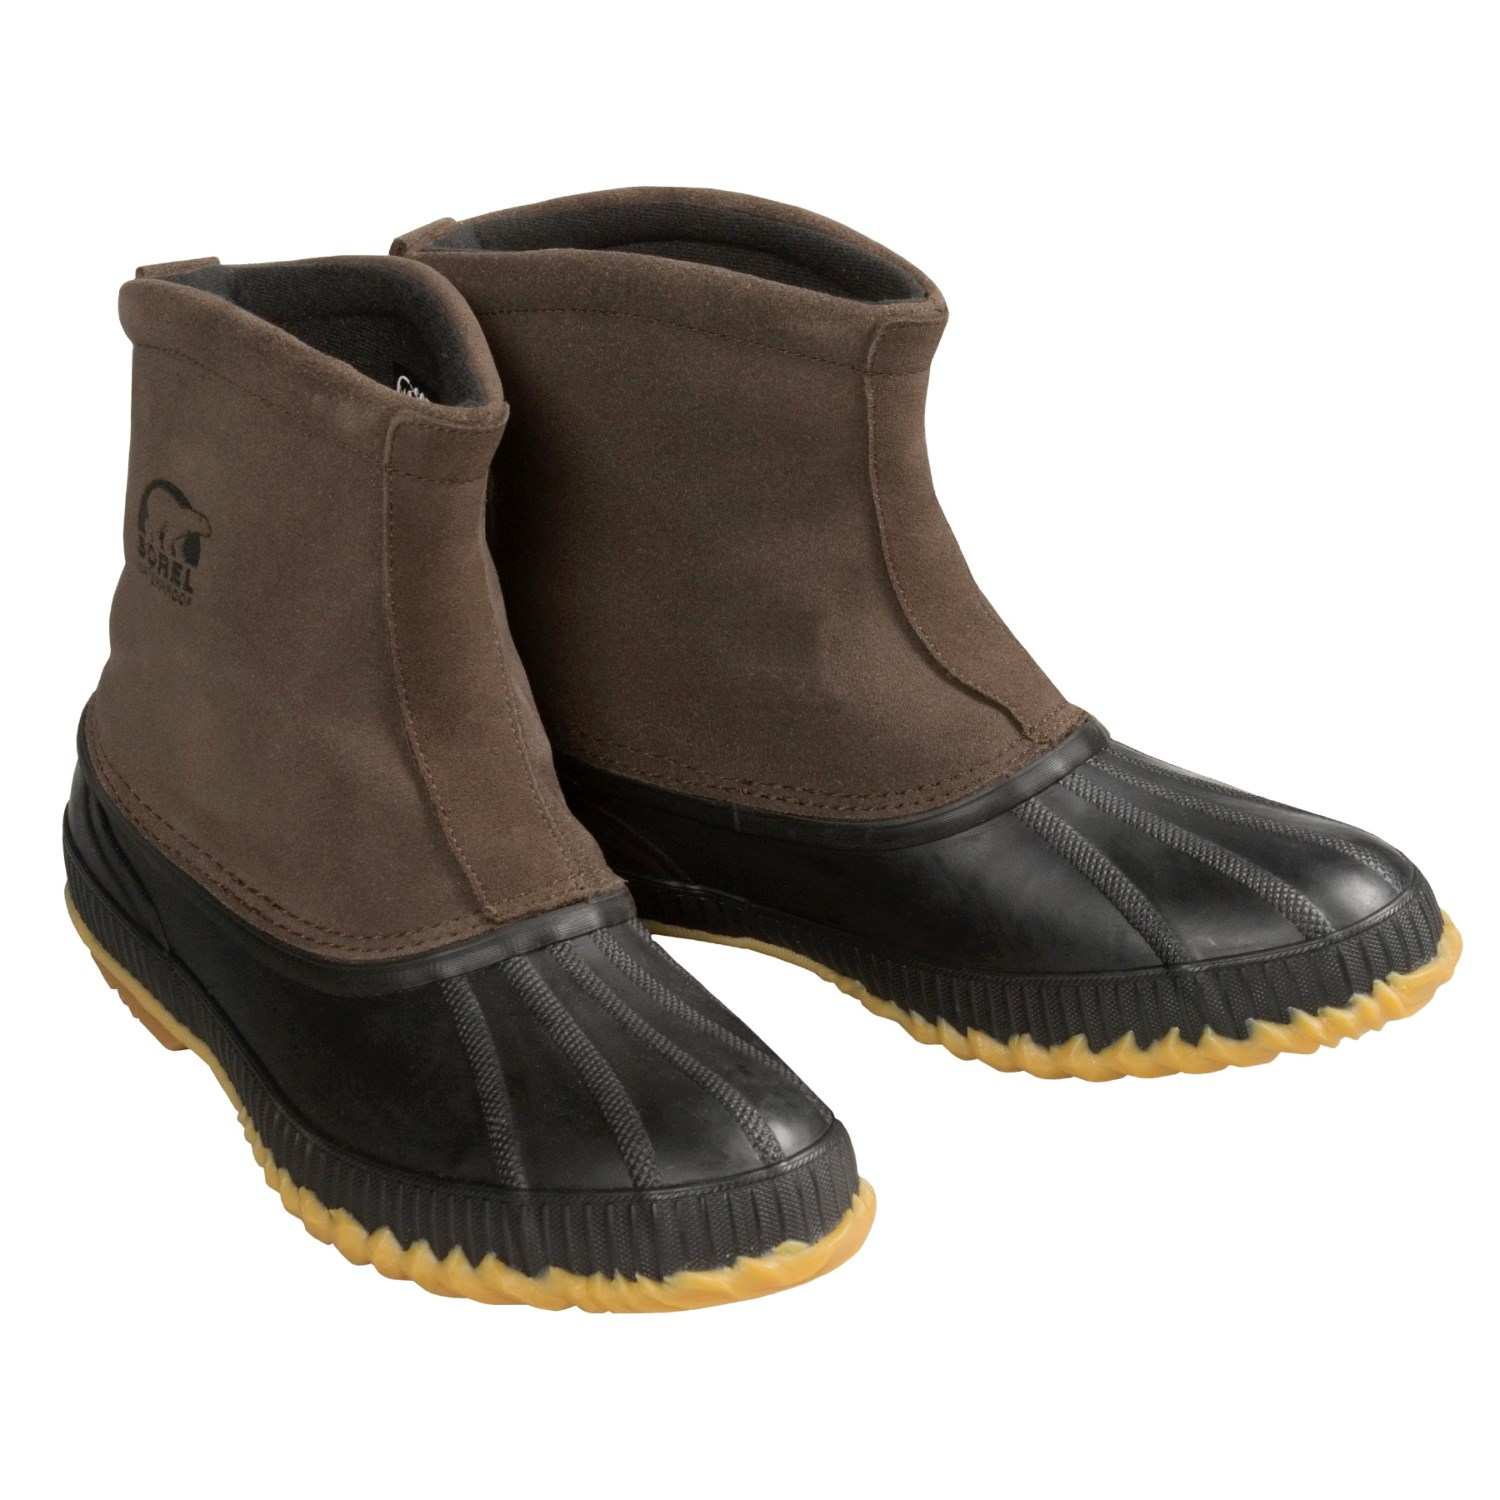 sorel cheyanne snow boots for 75394